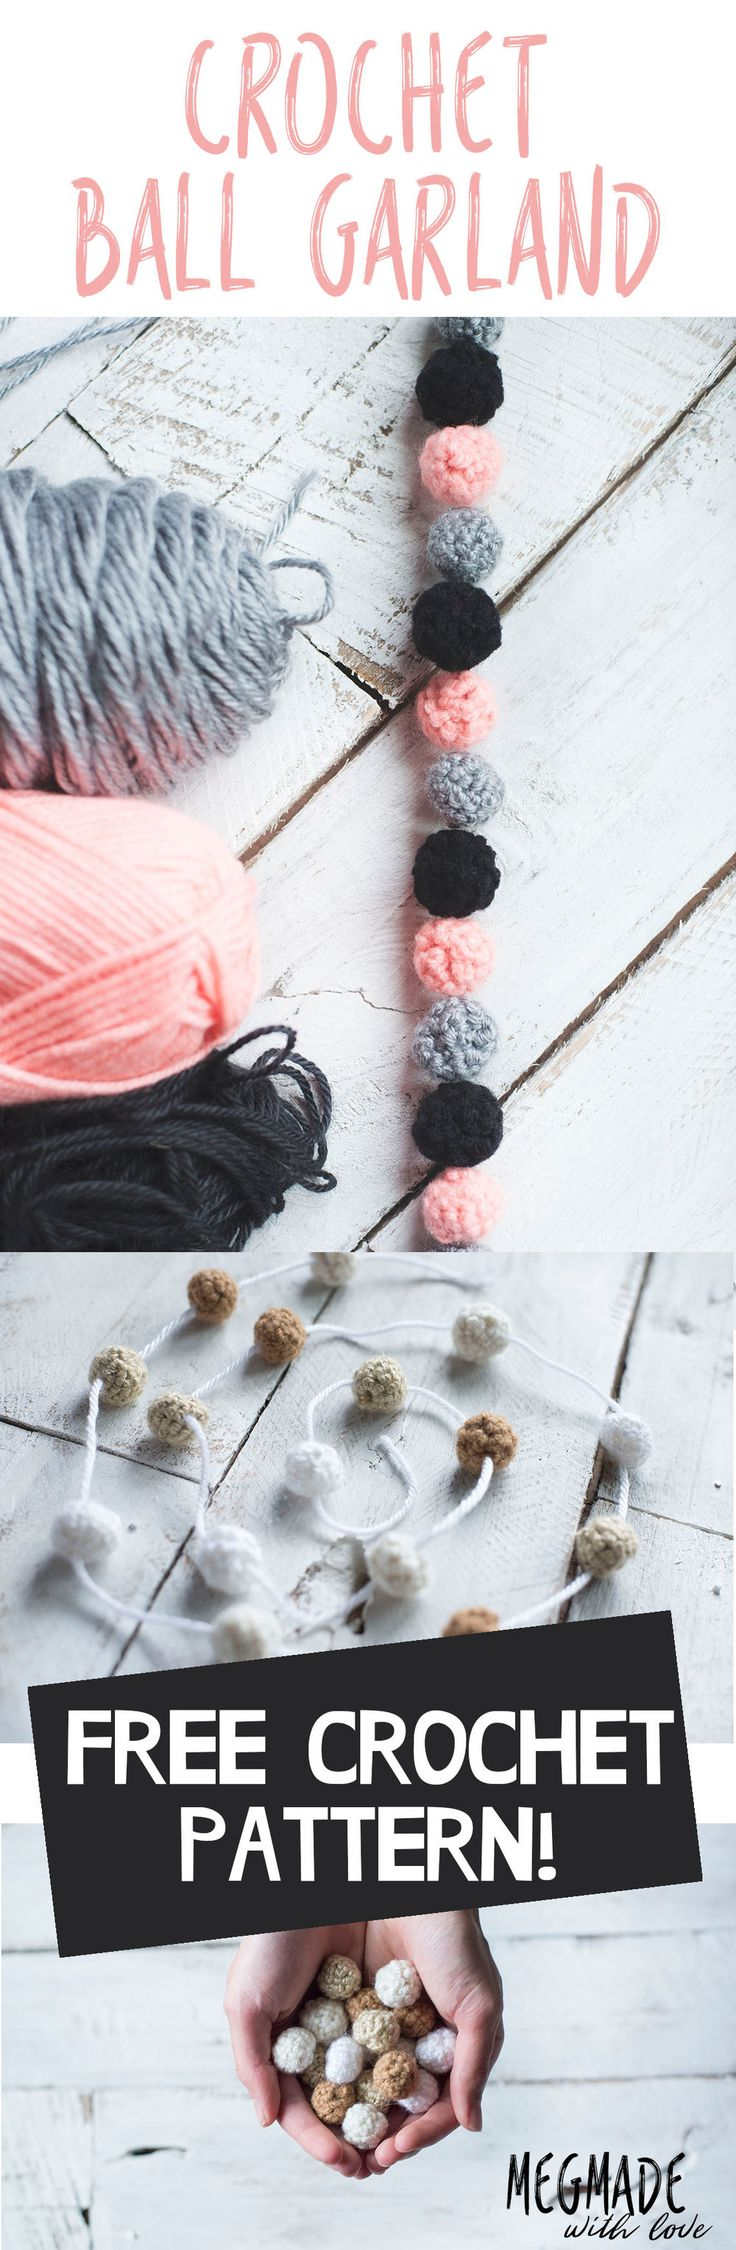 Mini Crochet Ball Garland Pattern — Megmade with Love